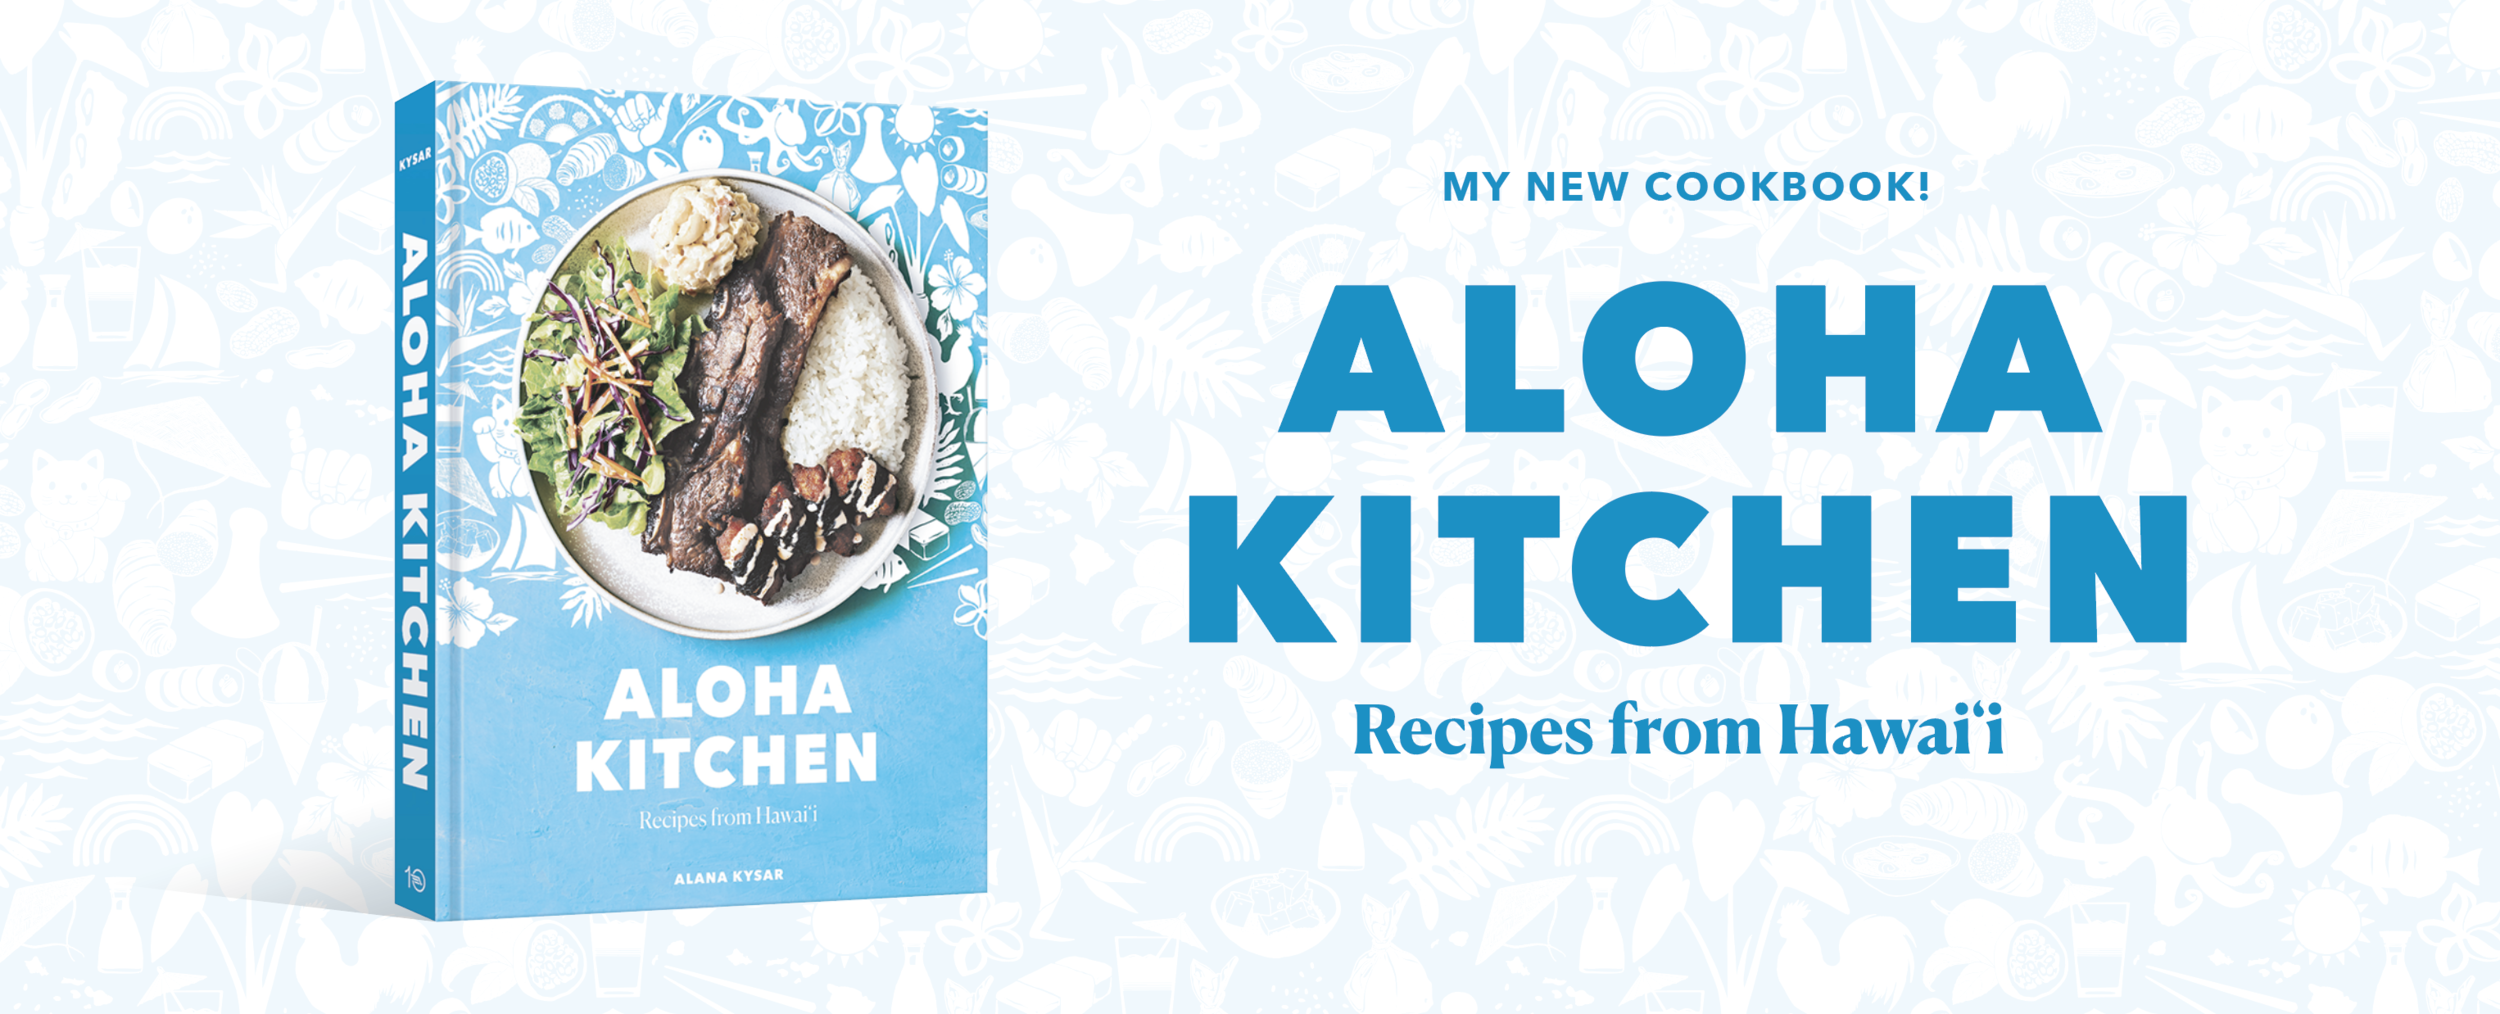 aloha-kitchen-cookbook-homepage-banner.png